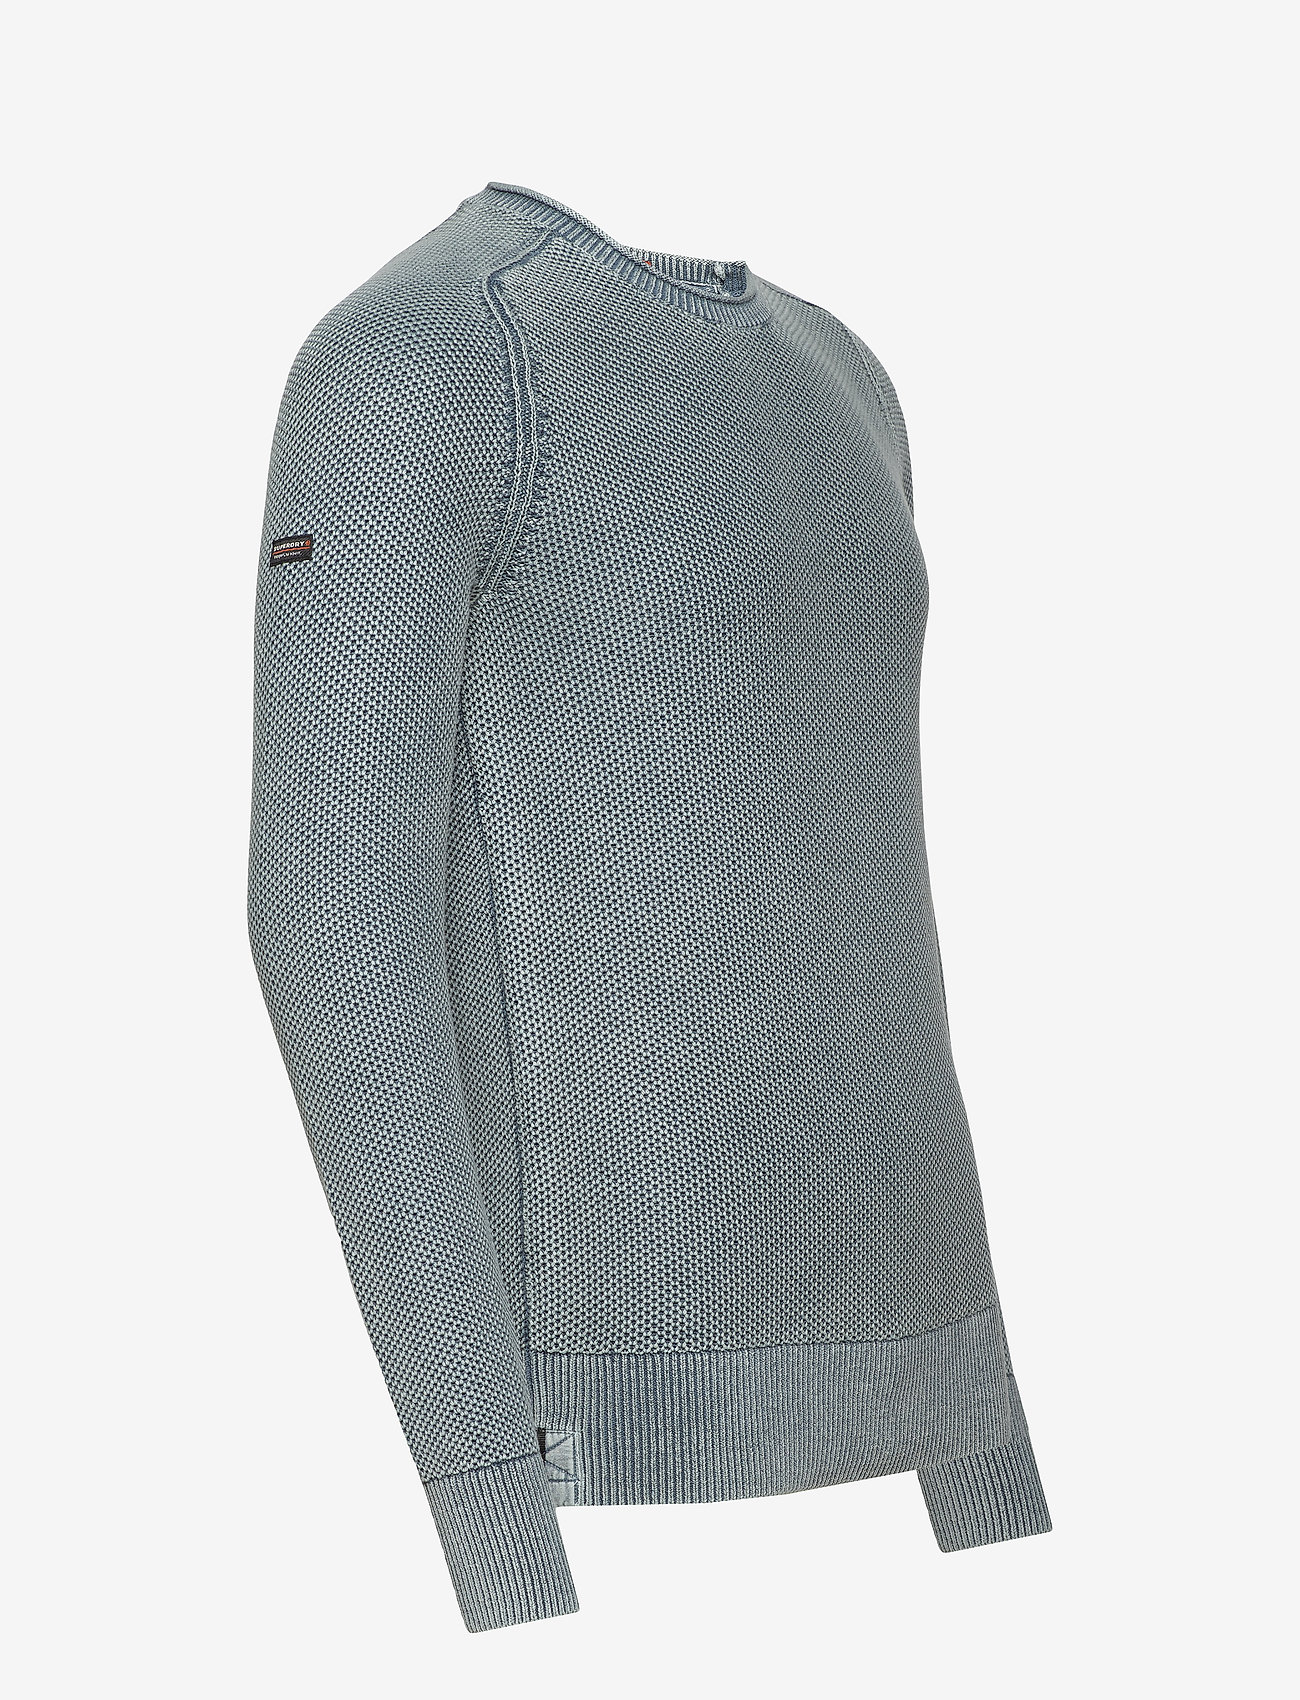 Superdry Garment Dye L.a.textured Crew - Stickat Washed Cloud Blue